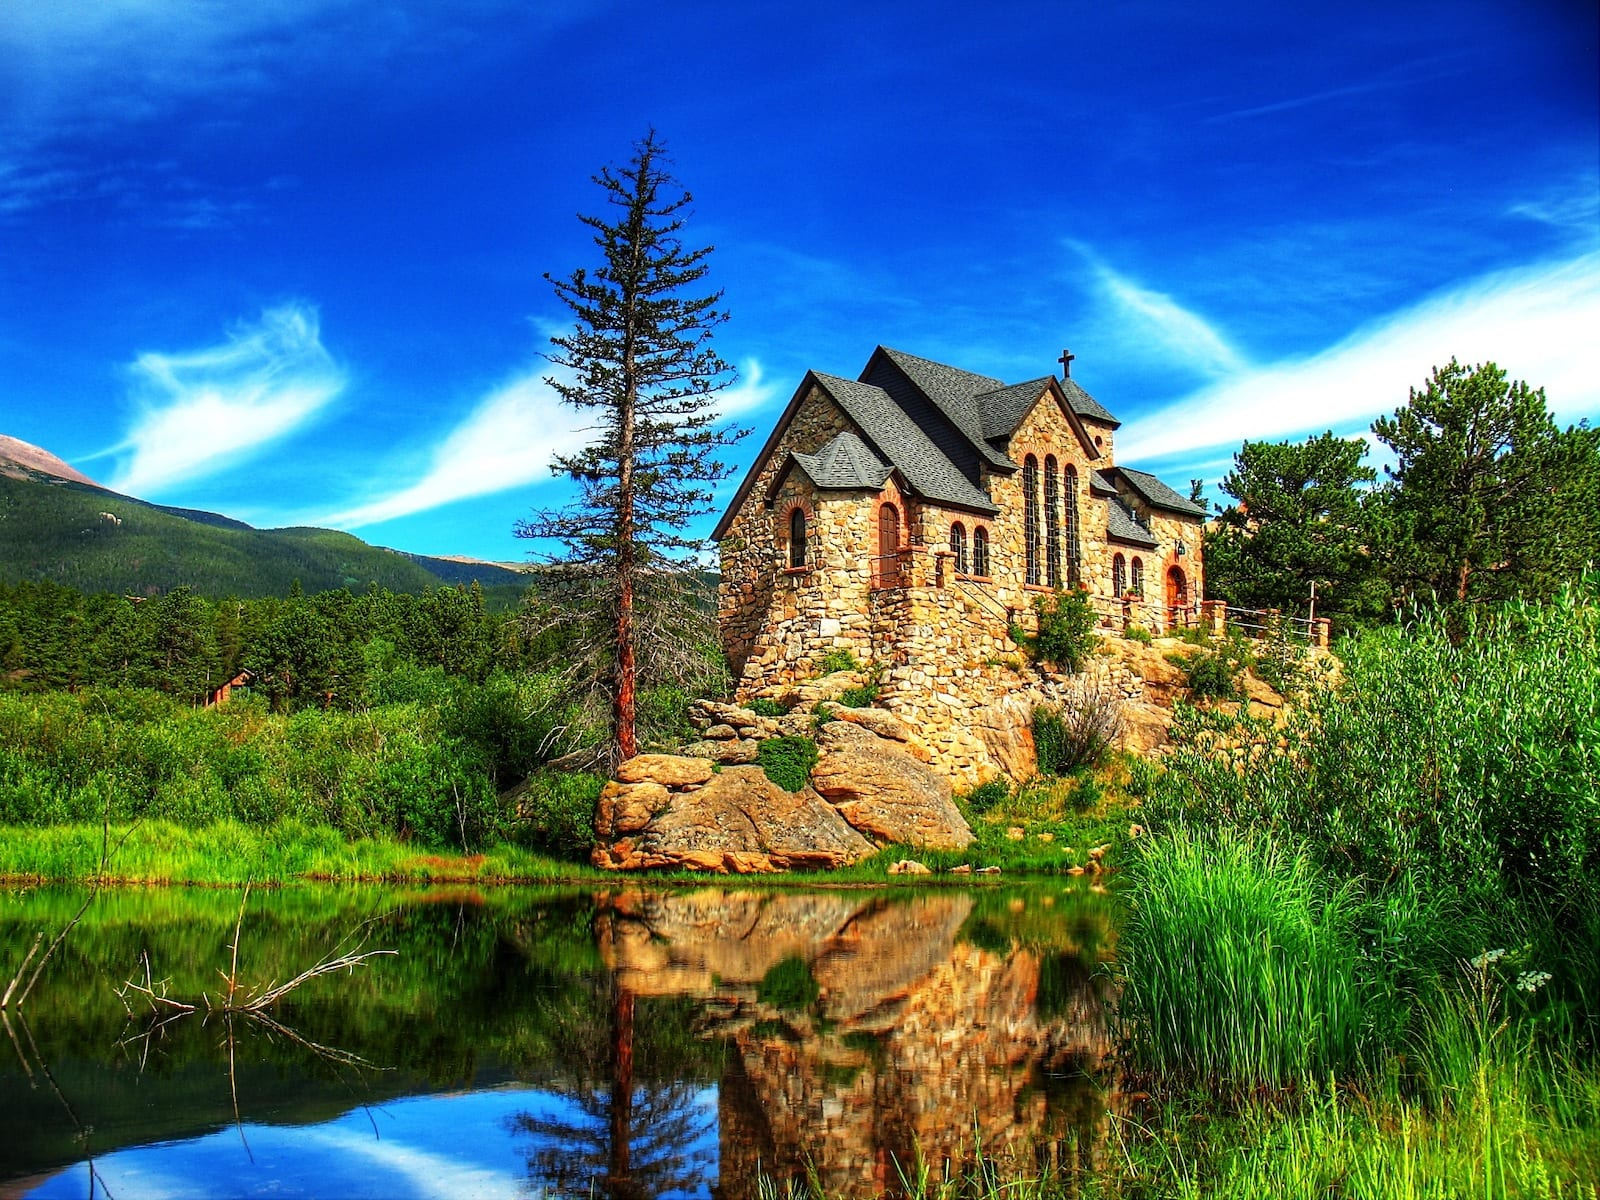 Saint Catherine's Chapel on the Rock, CO